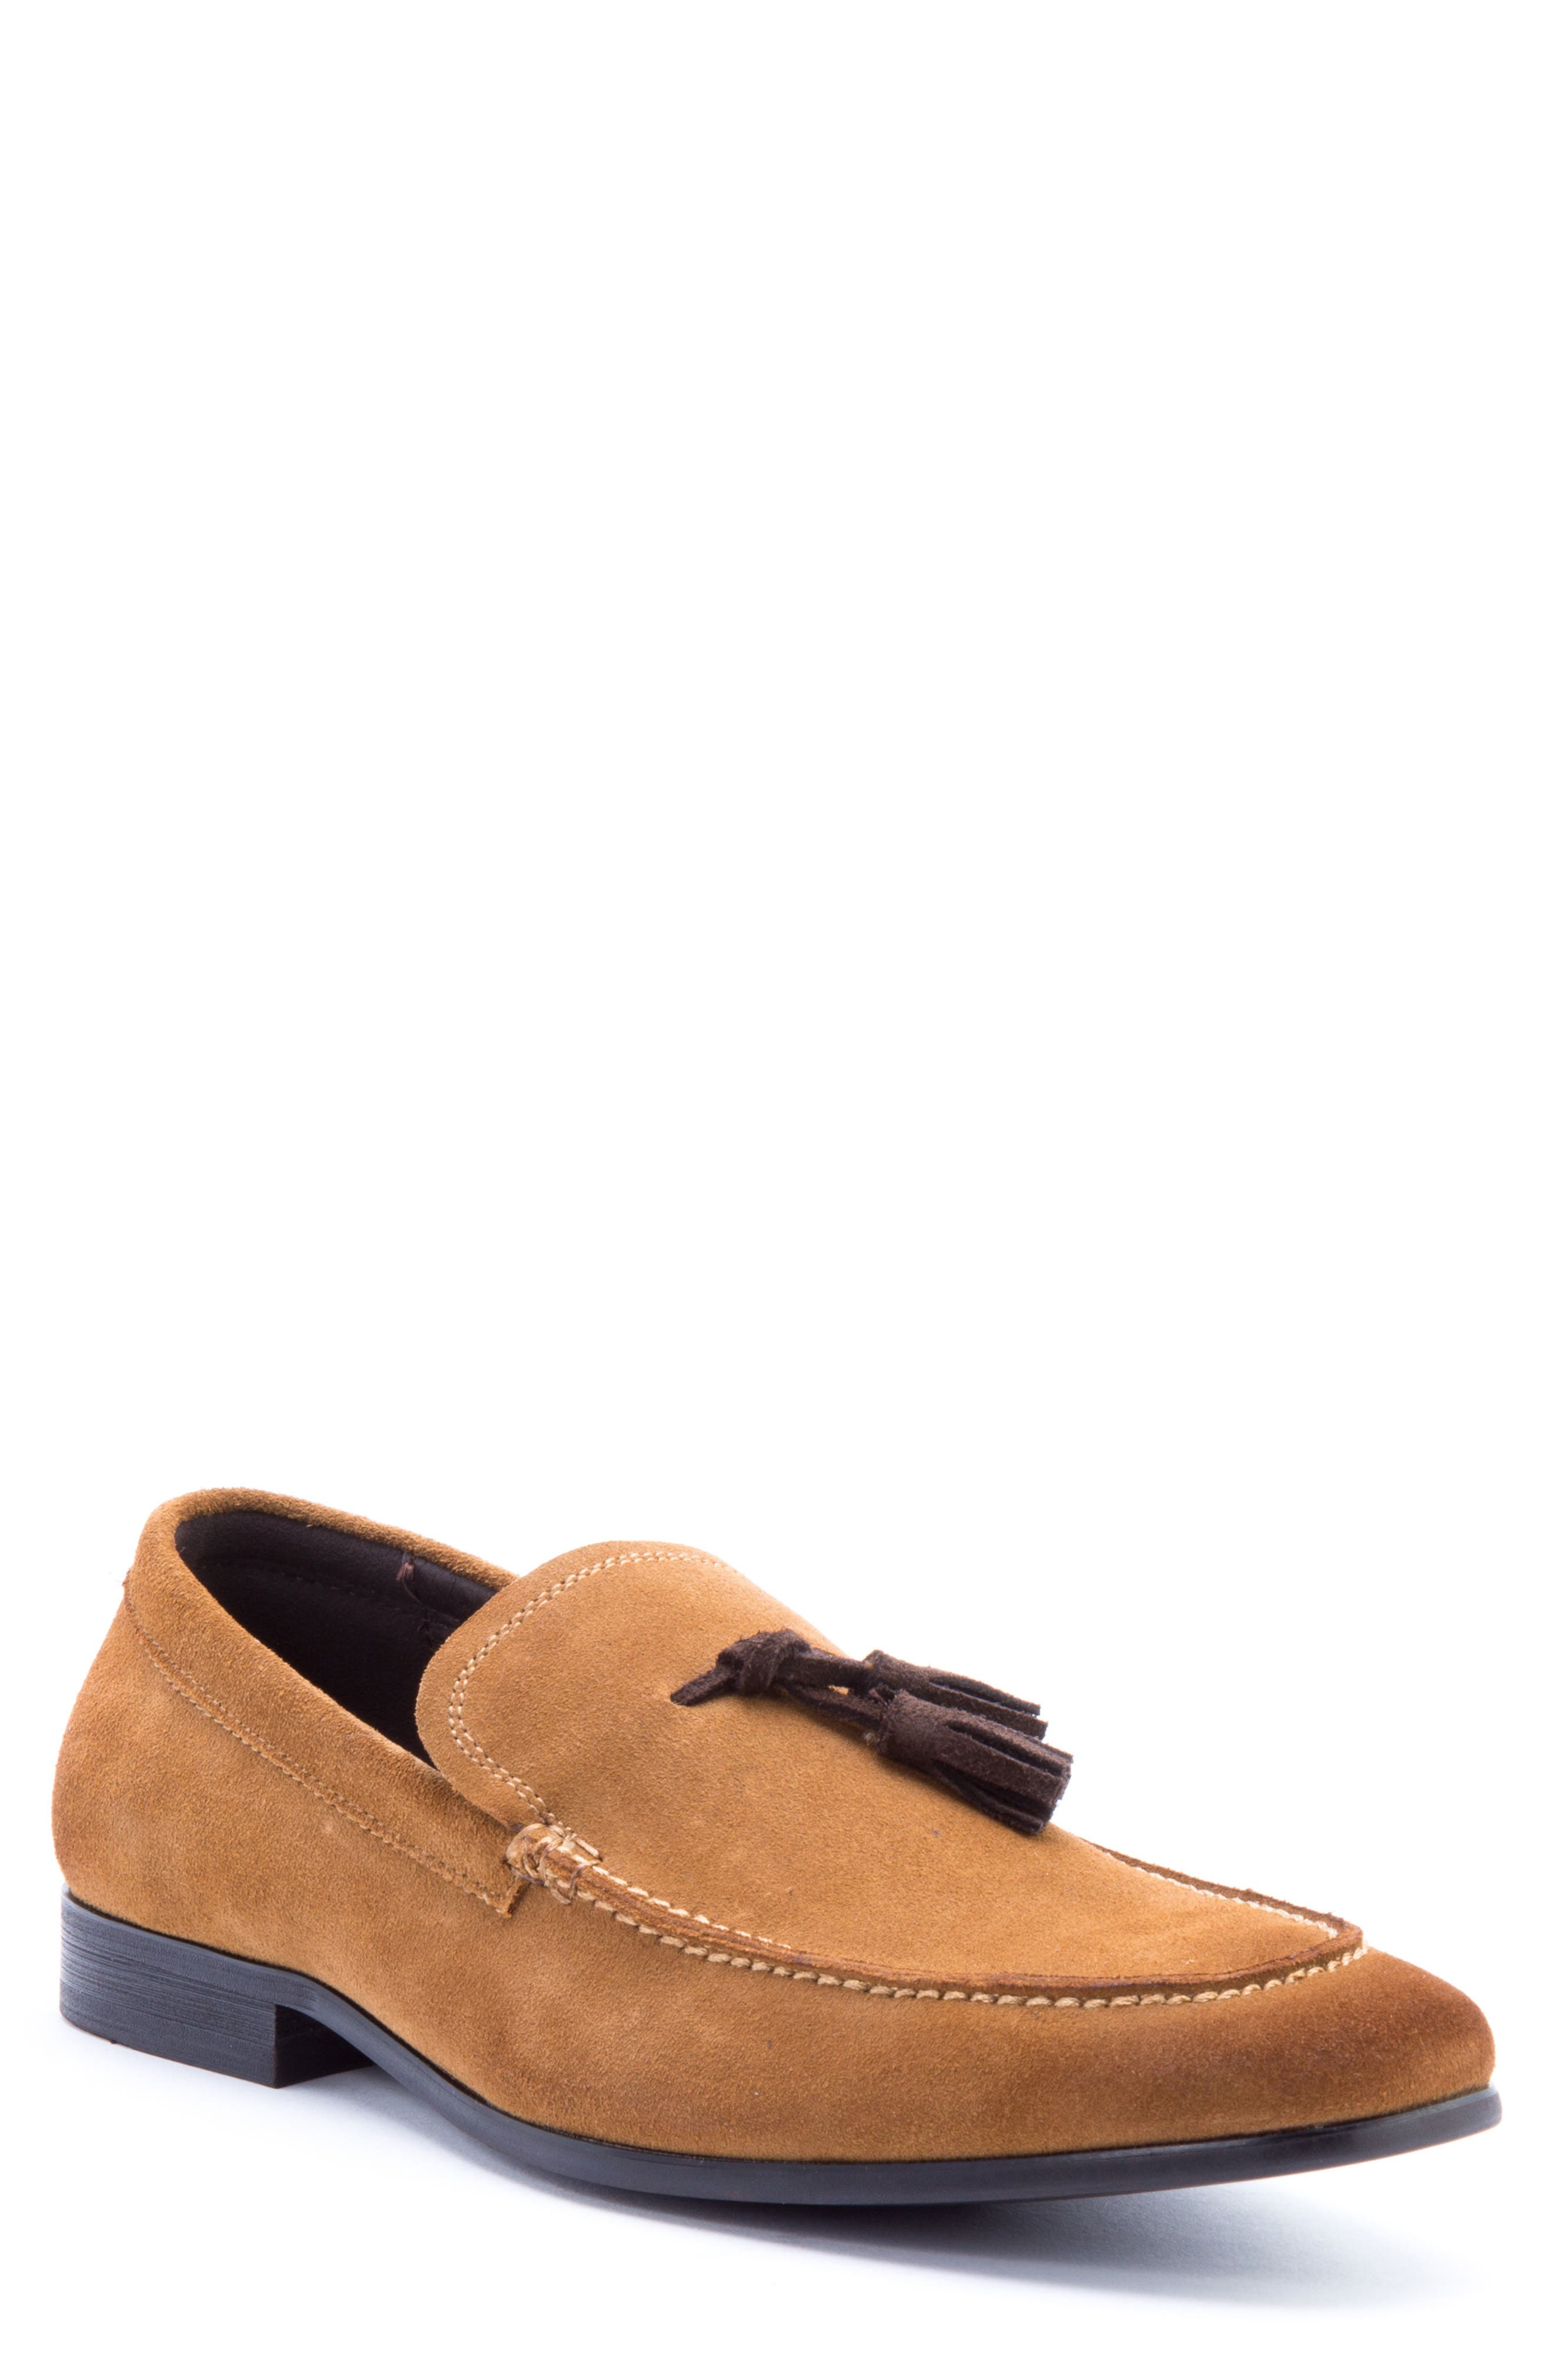 Severn Tassel Venetian Loafer,                             Main thumbnail 1, color,                             COGNAC SUEDE